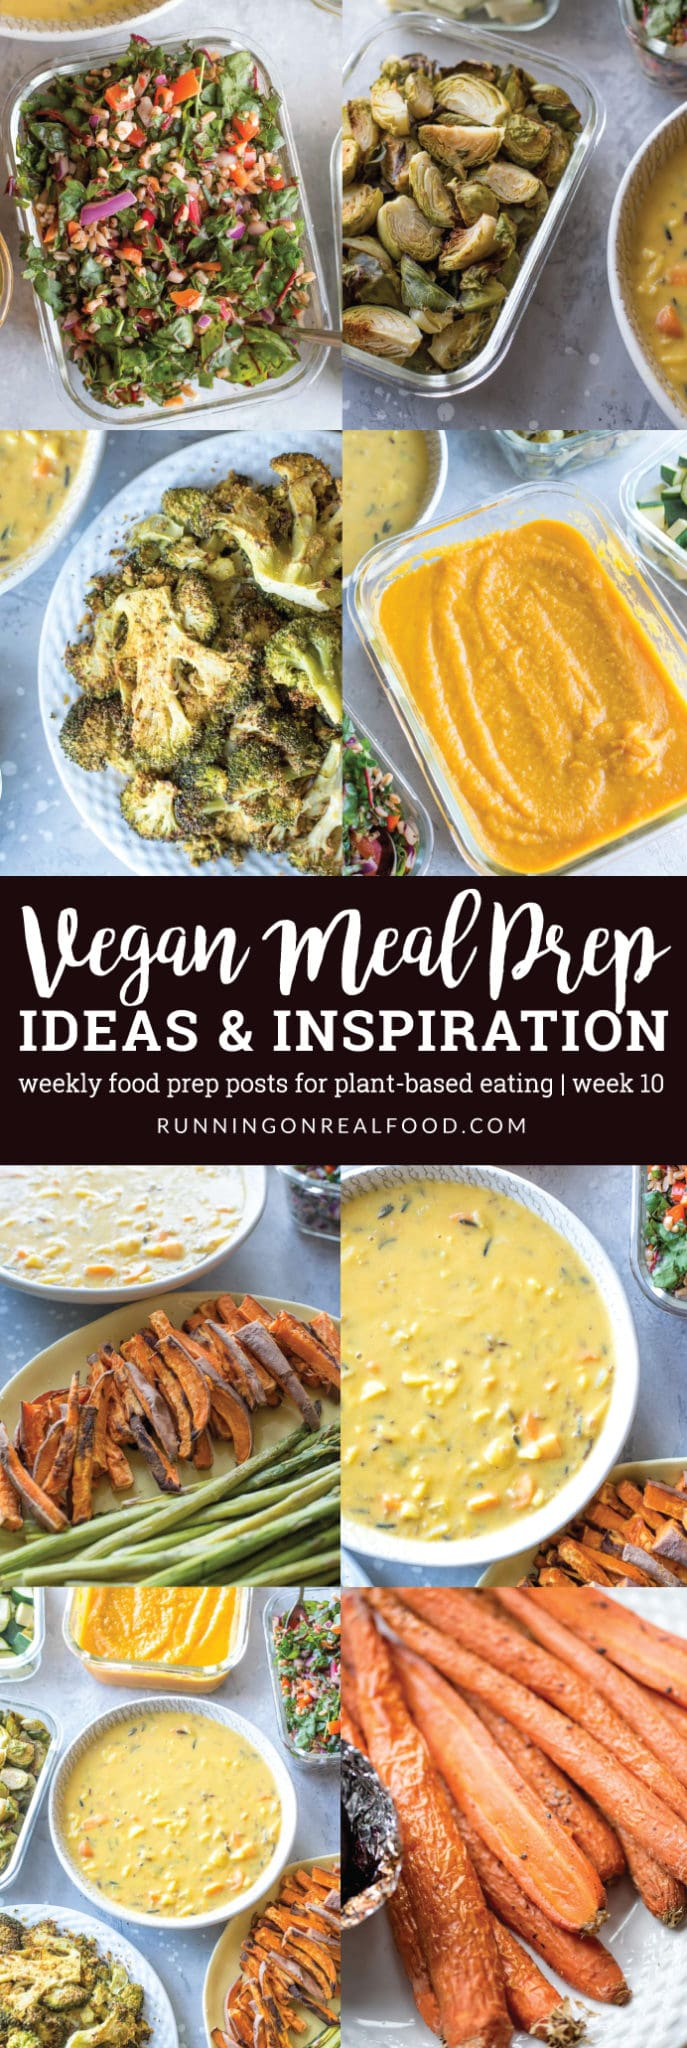 This weeks weekly vegan meal prep included wild rice soup, carrot apple soup, cheesy roasted broccoli and a farro and swiss chard salad plus check out some tips for meal prep breakfasts and vegan snacking.